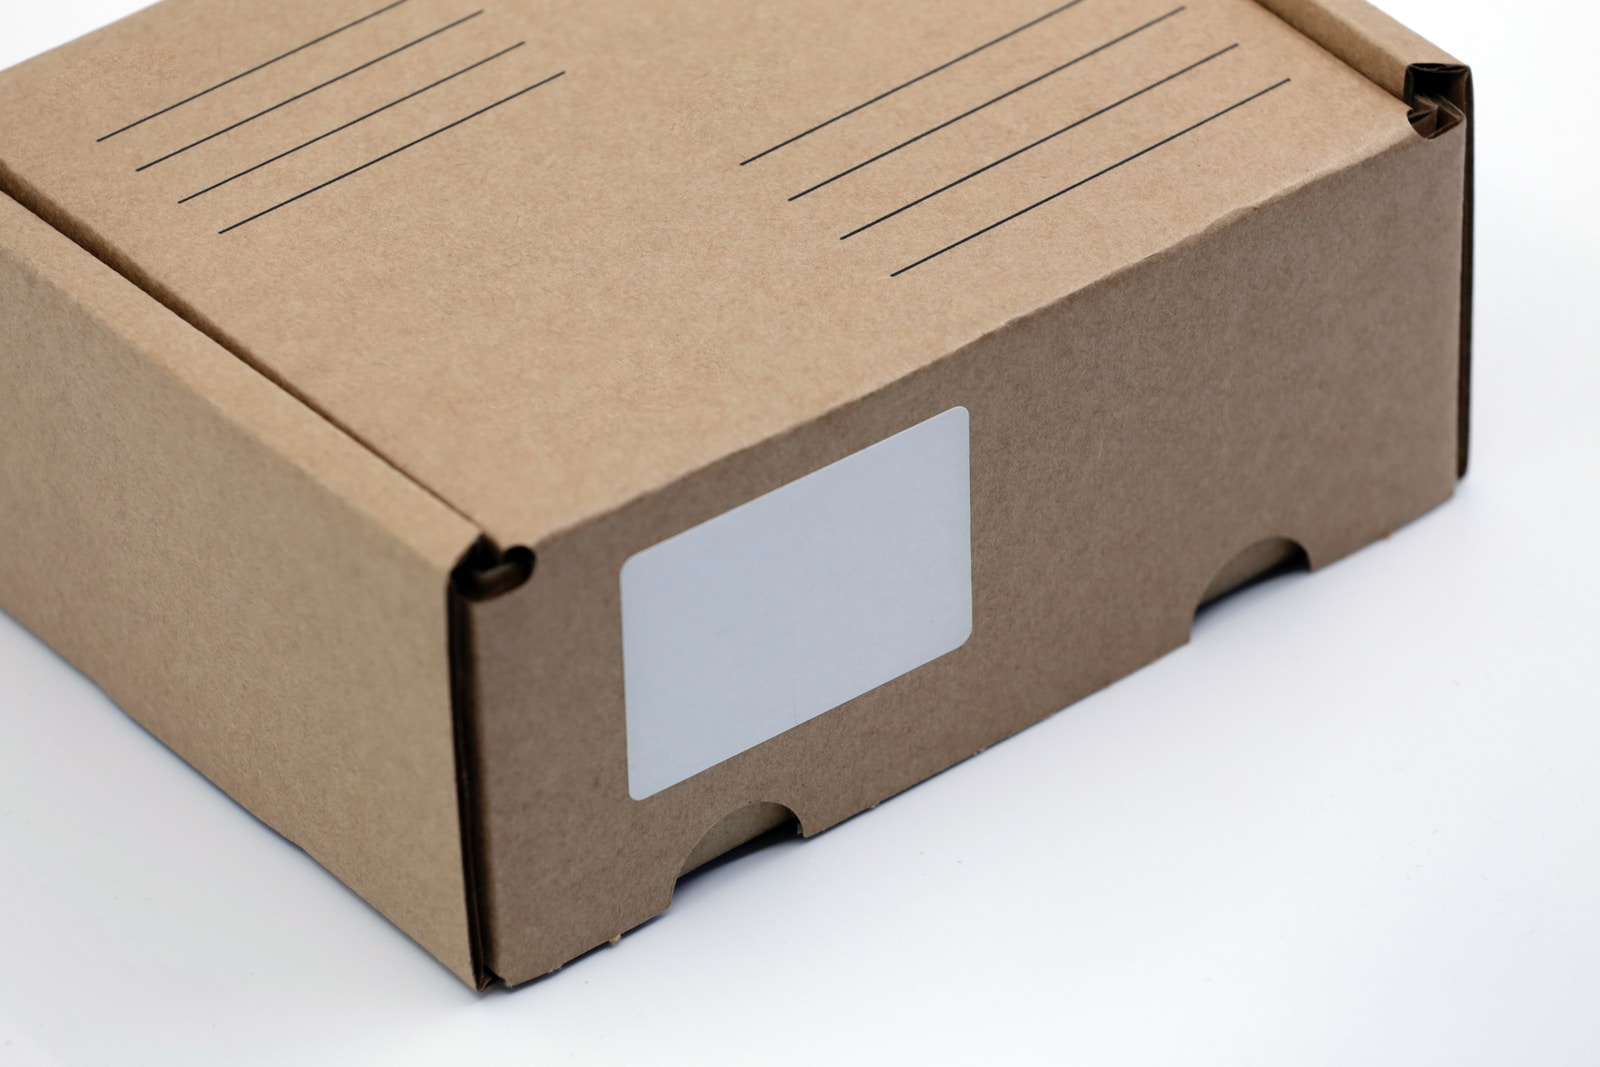 brown cardboard box on white table